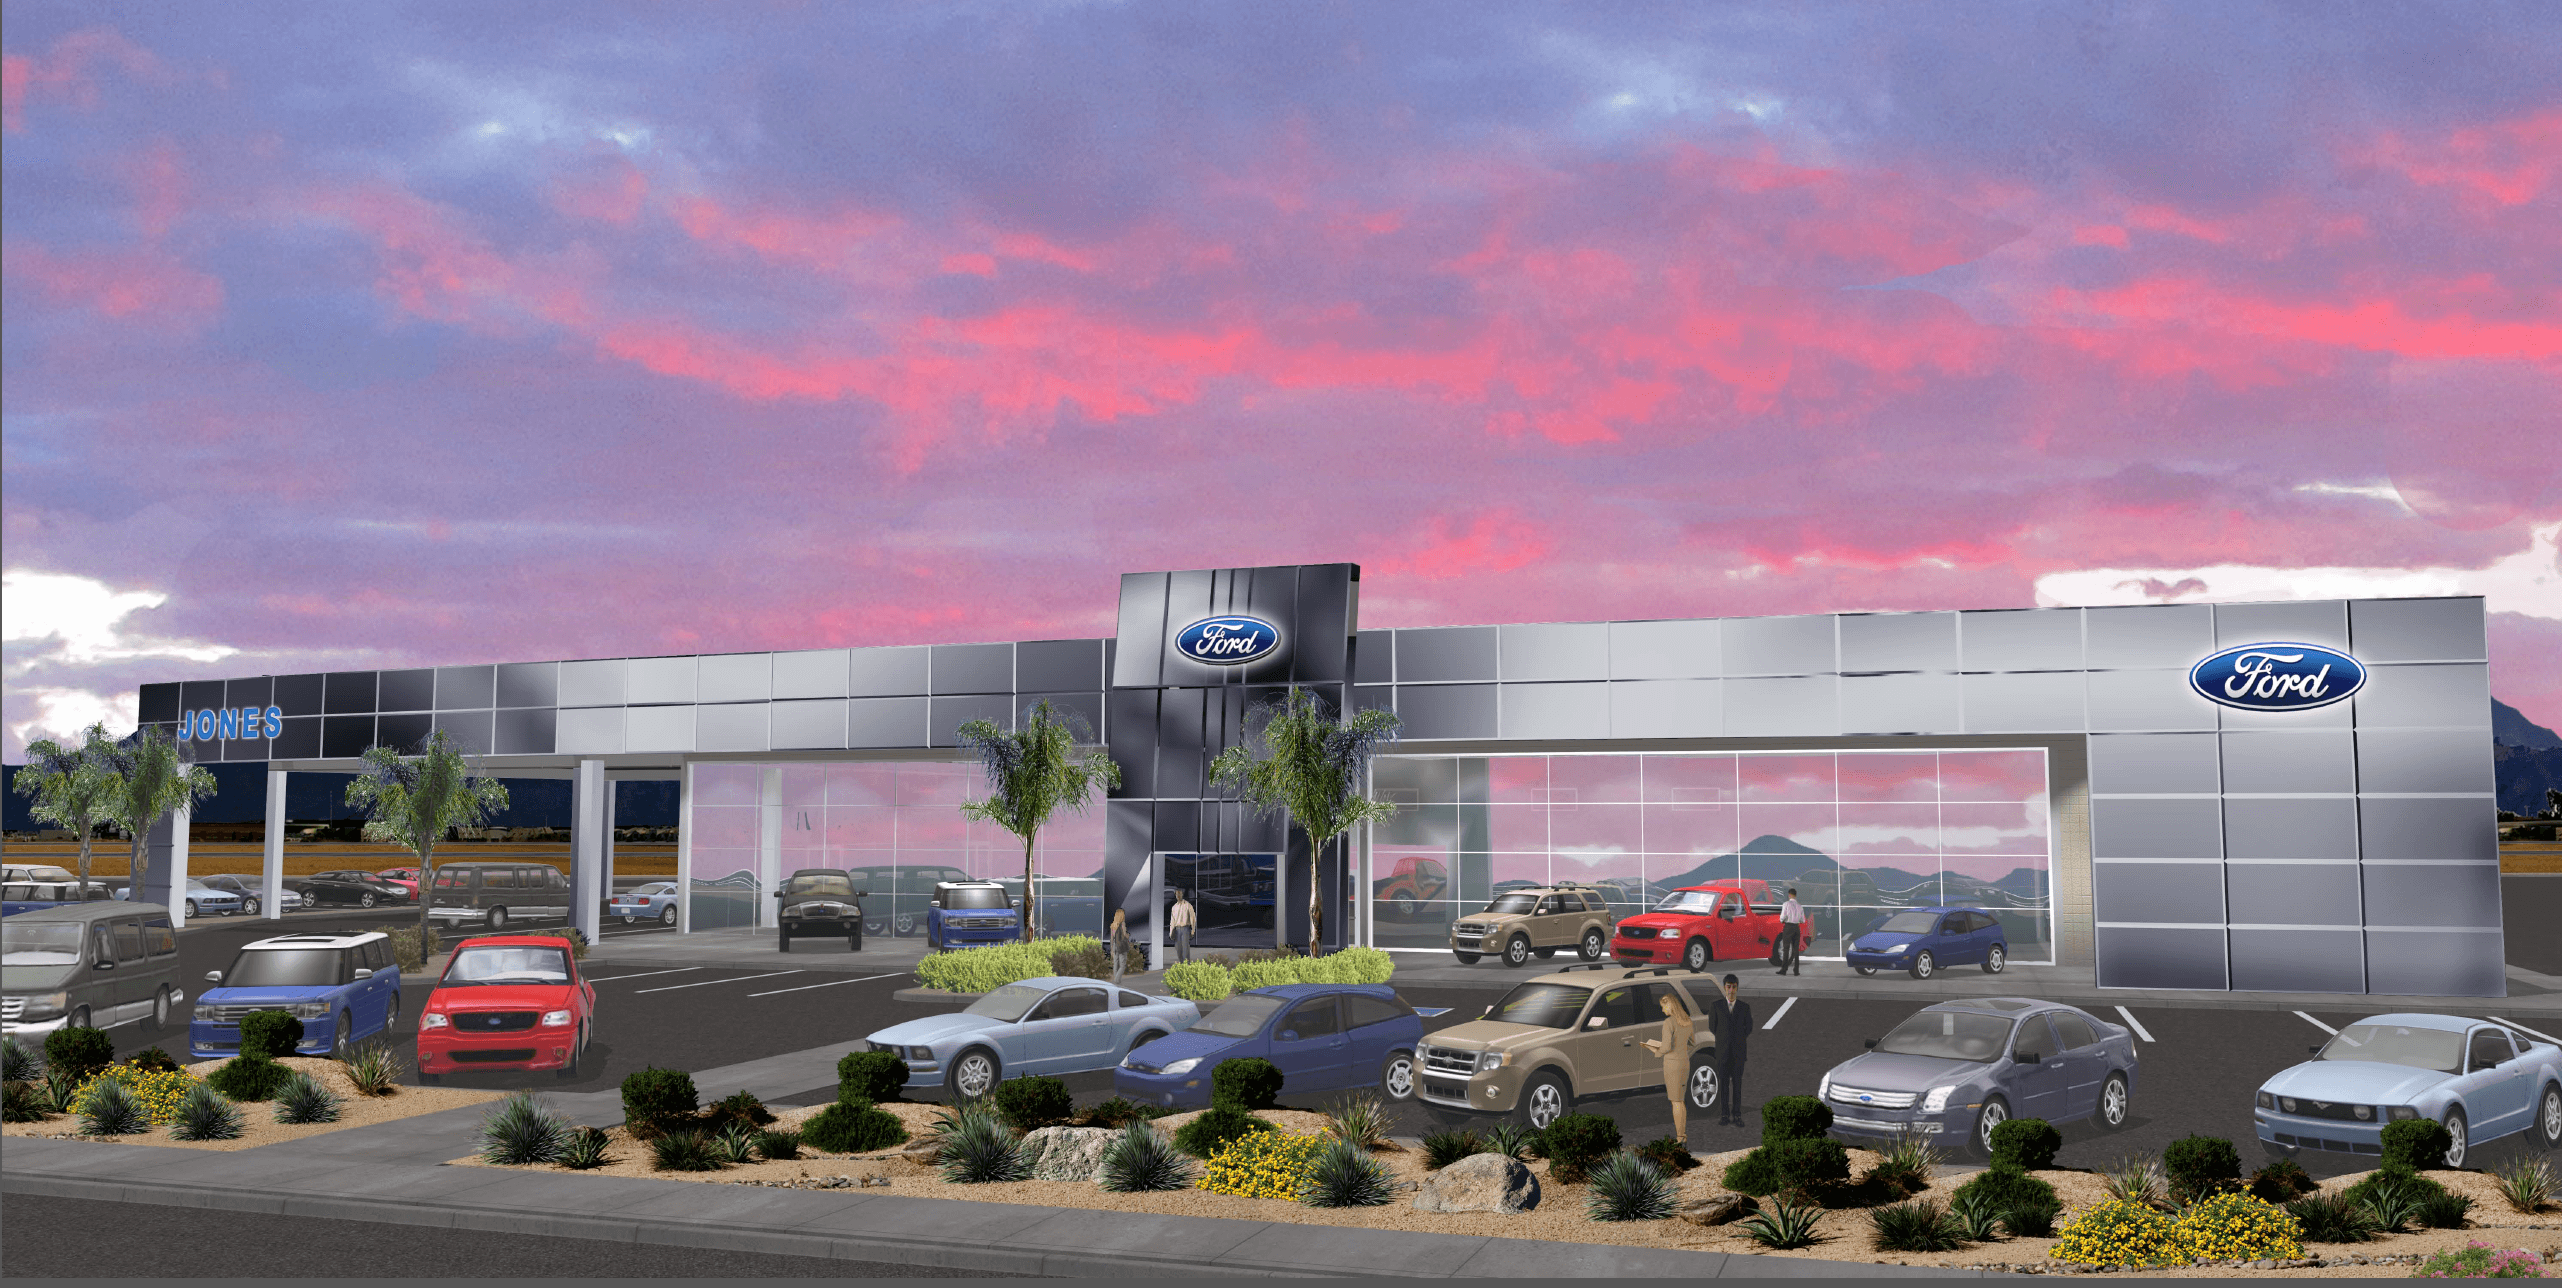 this dealership composite hoerr incorporates p completely panel sq brand renovation wall new aluminum a acm and yemm addition ford curtain inc dsc j facade structure well renovationaddition as ft glass material